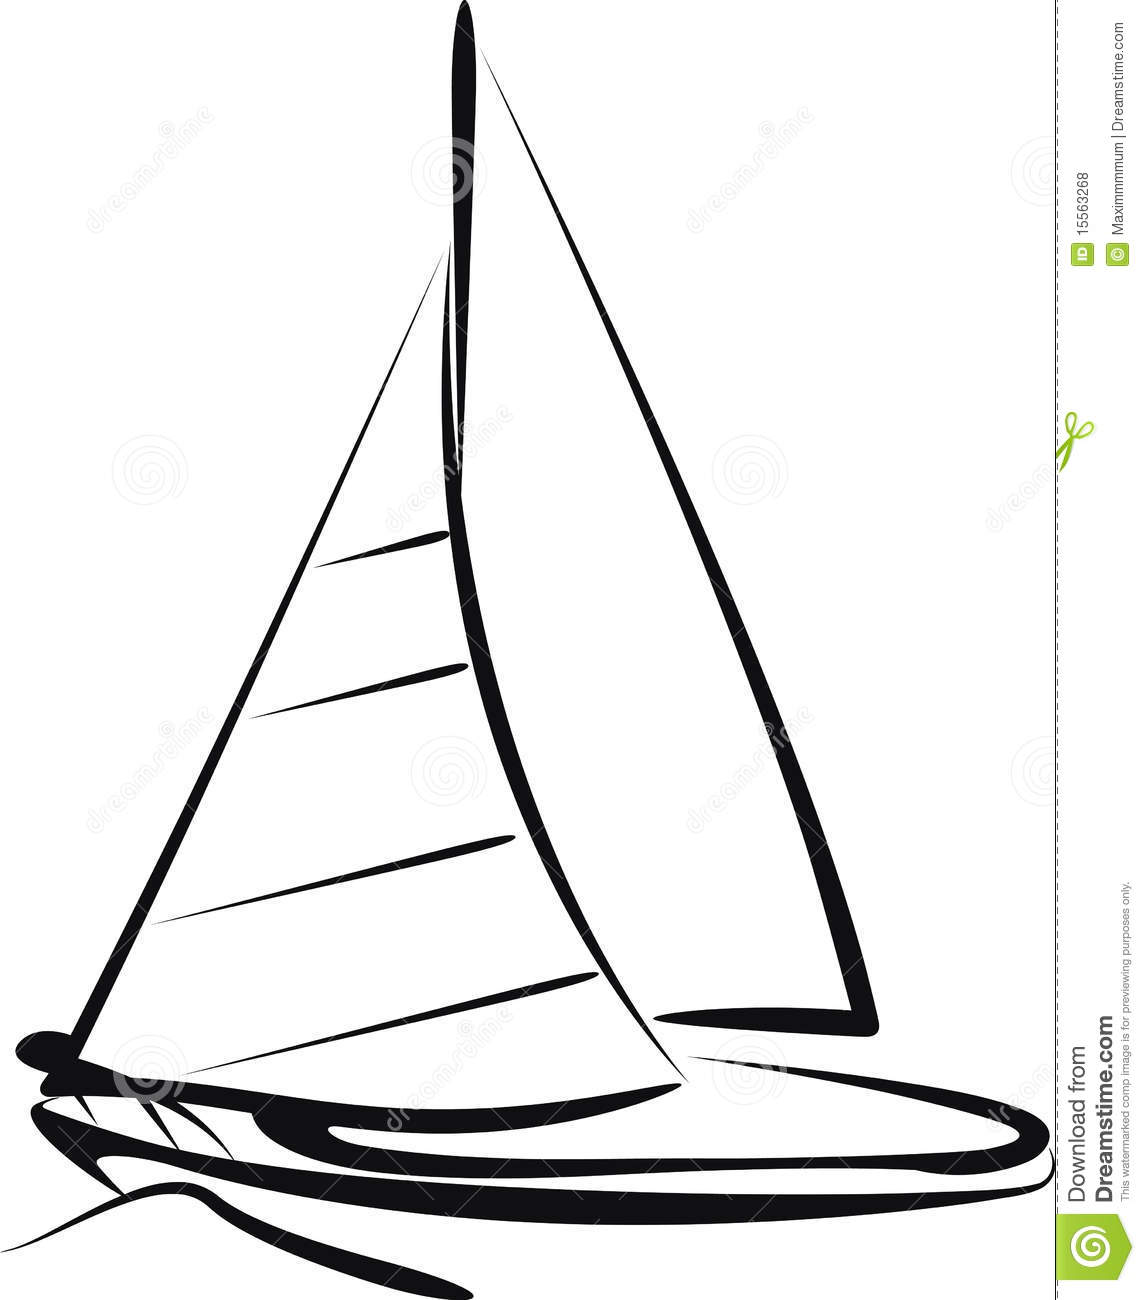 Line Drawing Yacht : Simple sailboat drawing clipart panda free images